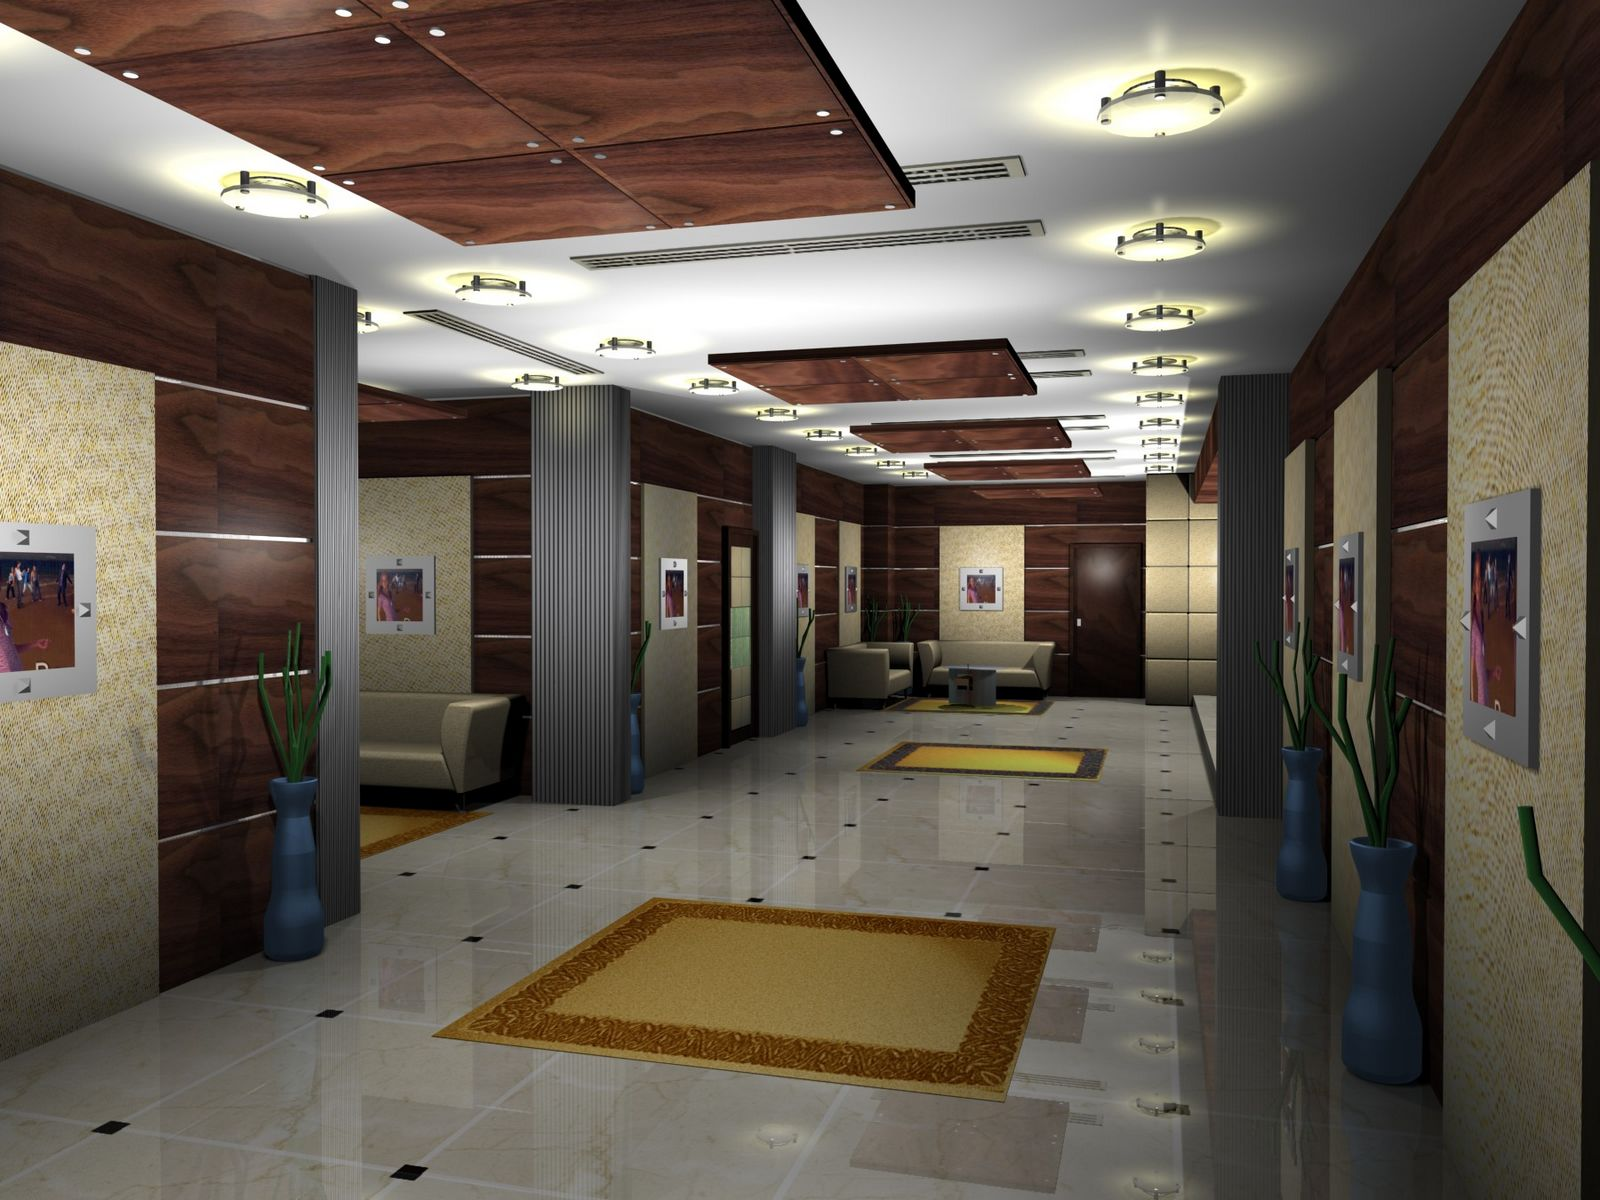 Gurooji design mont royal hotel lobby design for Villa lobby interior design